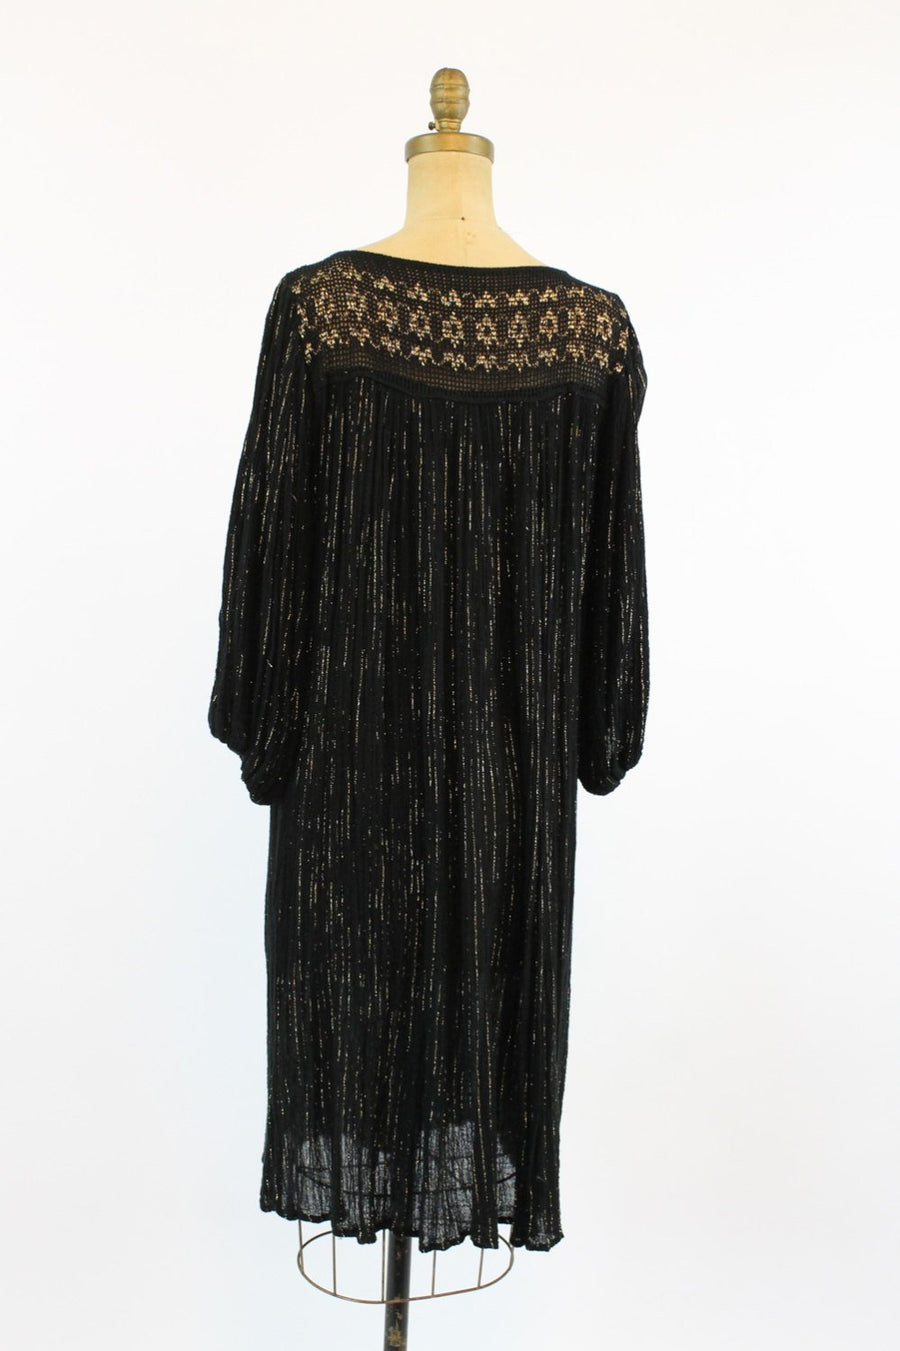 1970s gauzy cotton caftan dress all size | vintage gold crochet dress